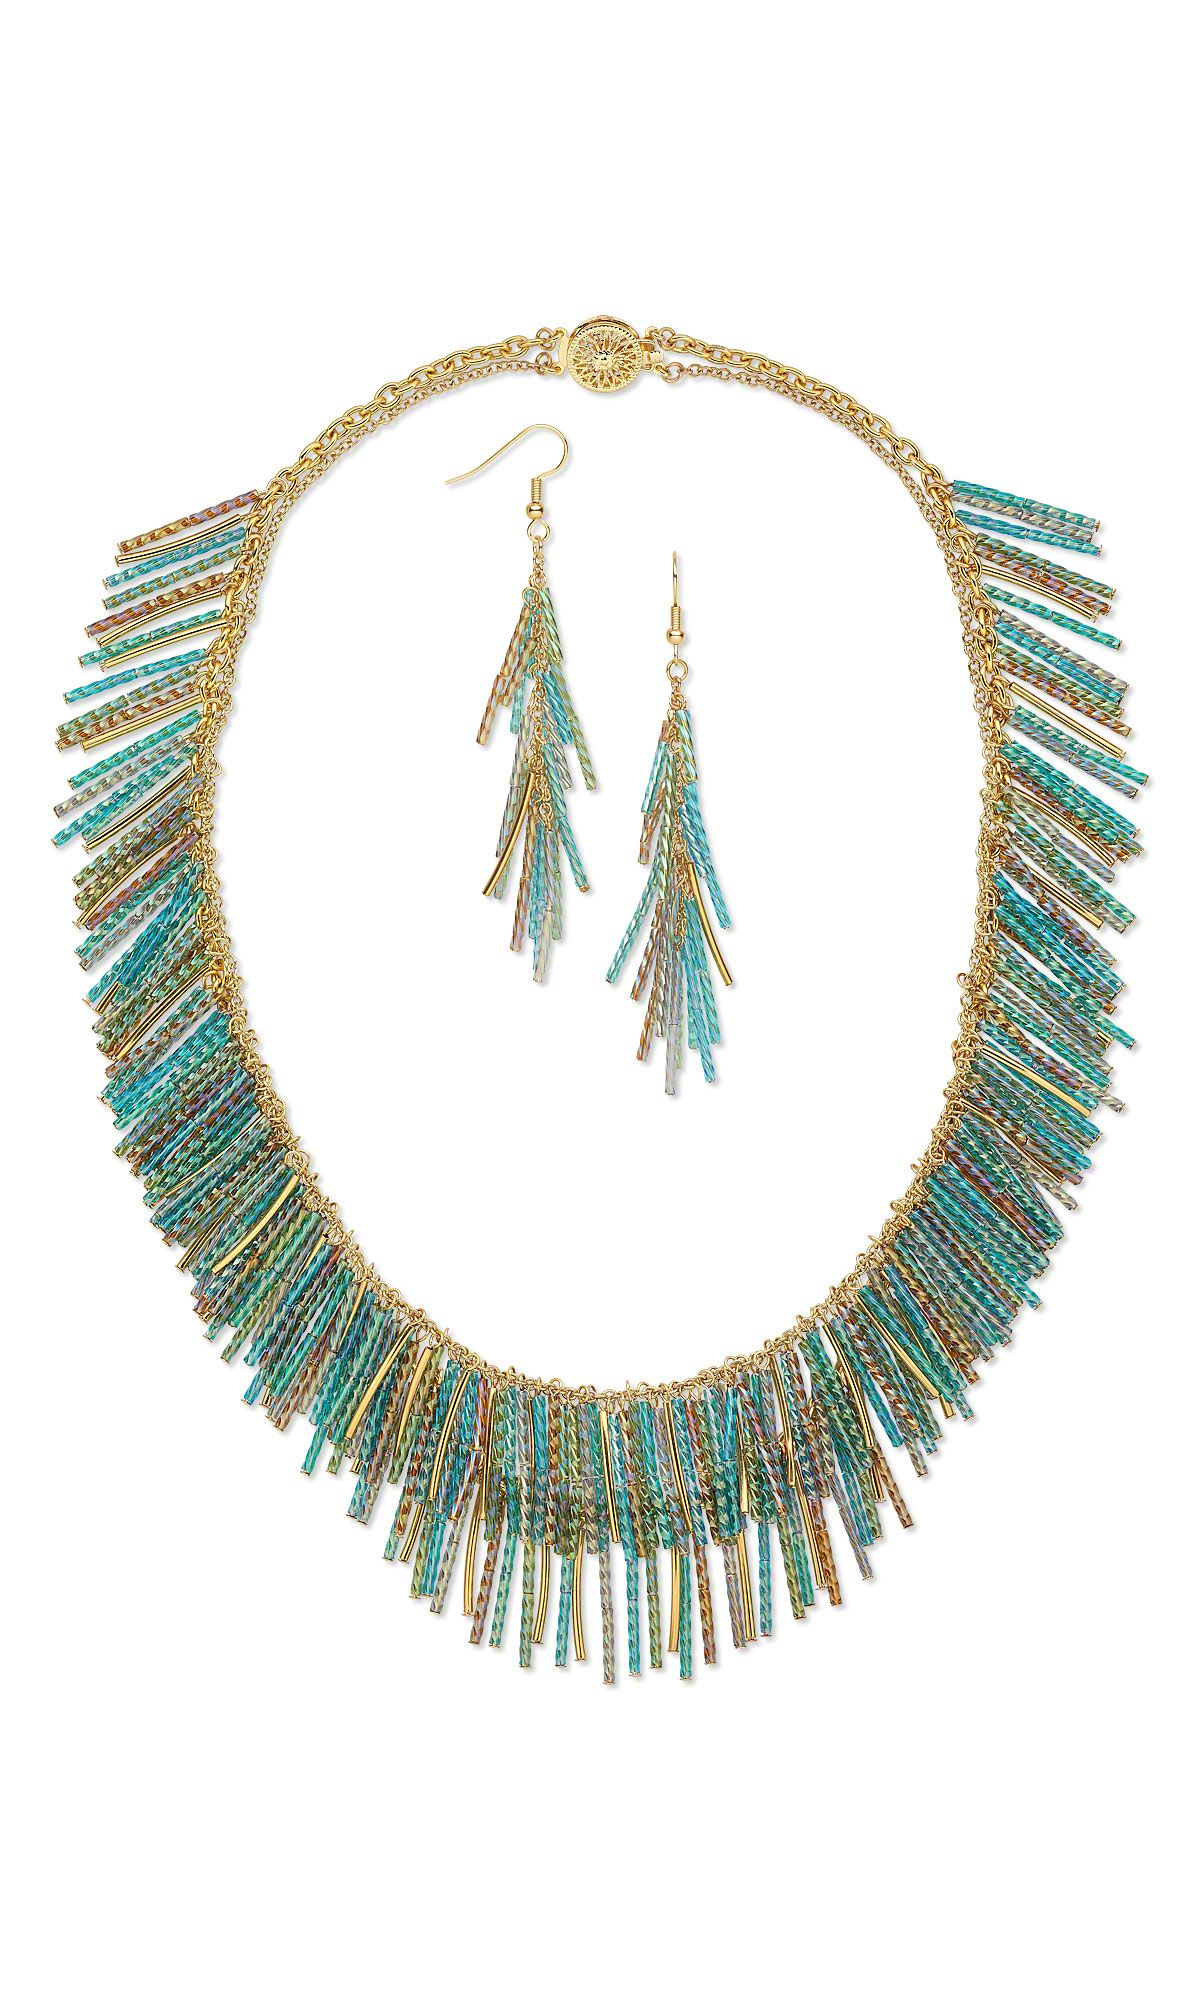 Jewelry Design Collar Style Necklace